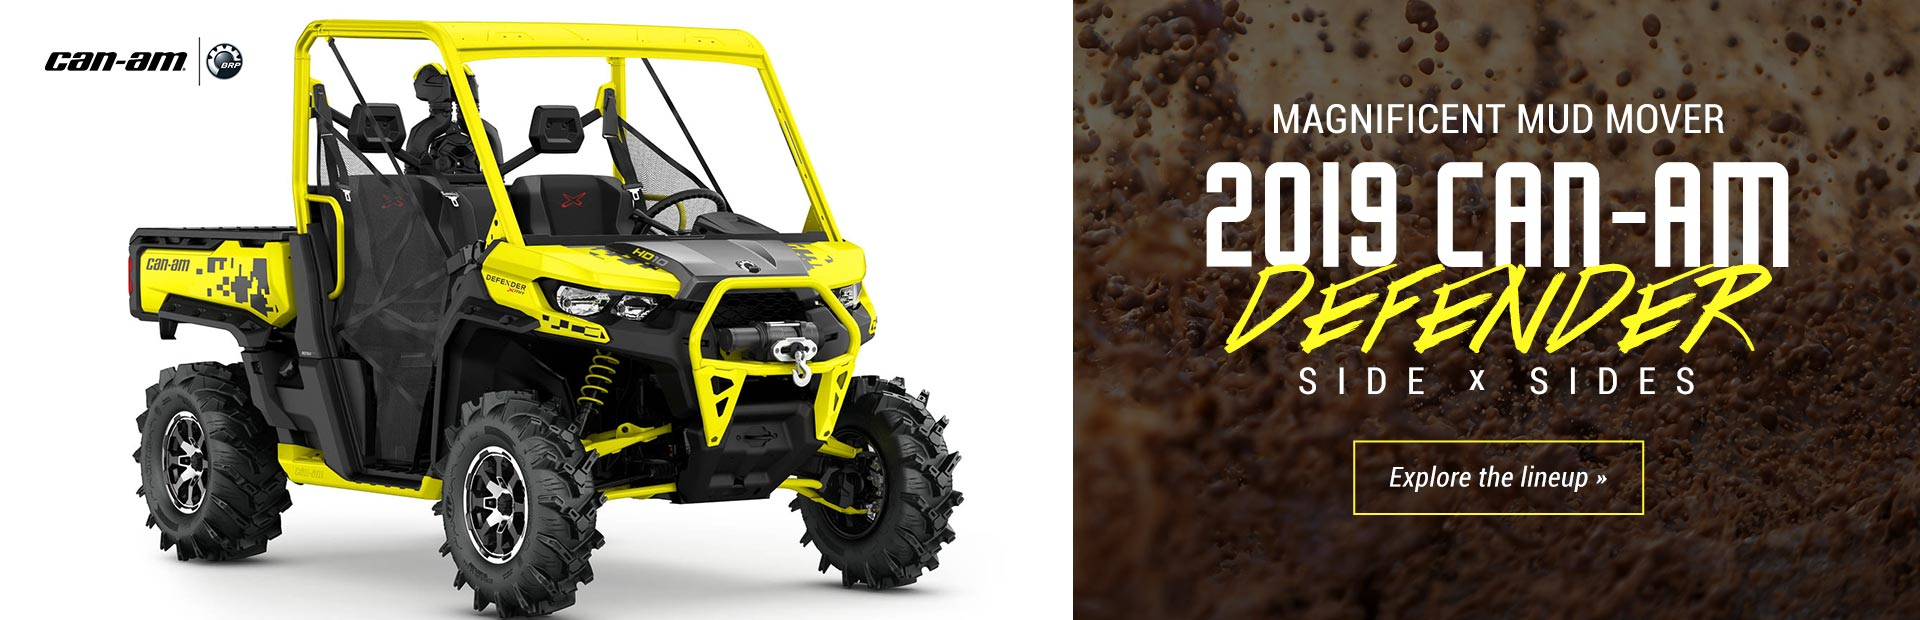 2019 Can-Am Defender Side x Sides: Click here to view the models.